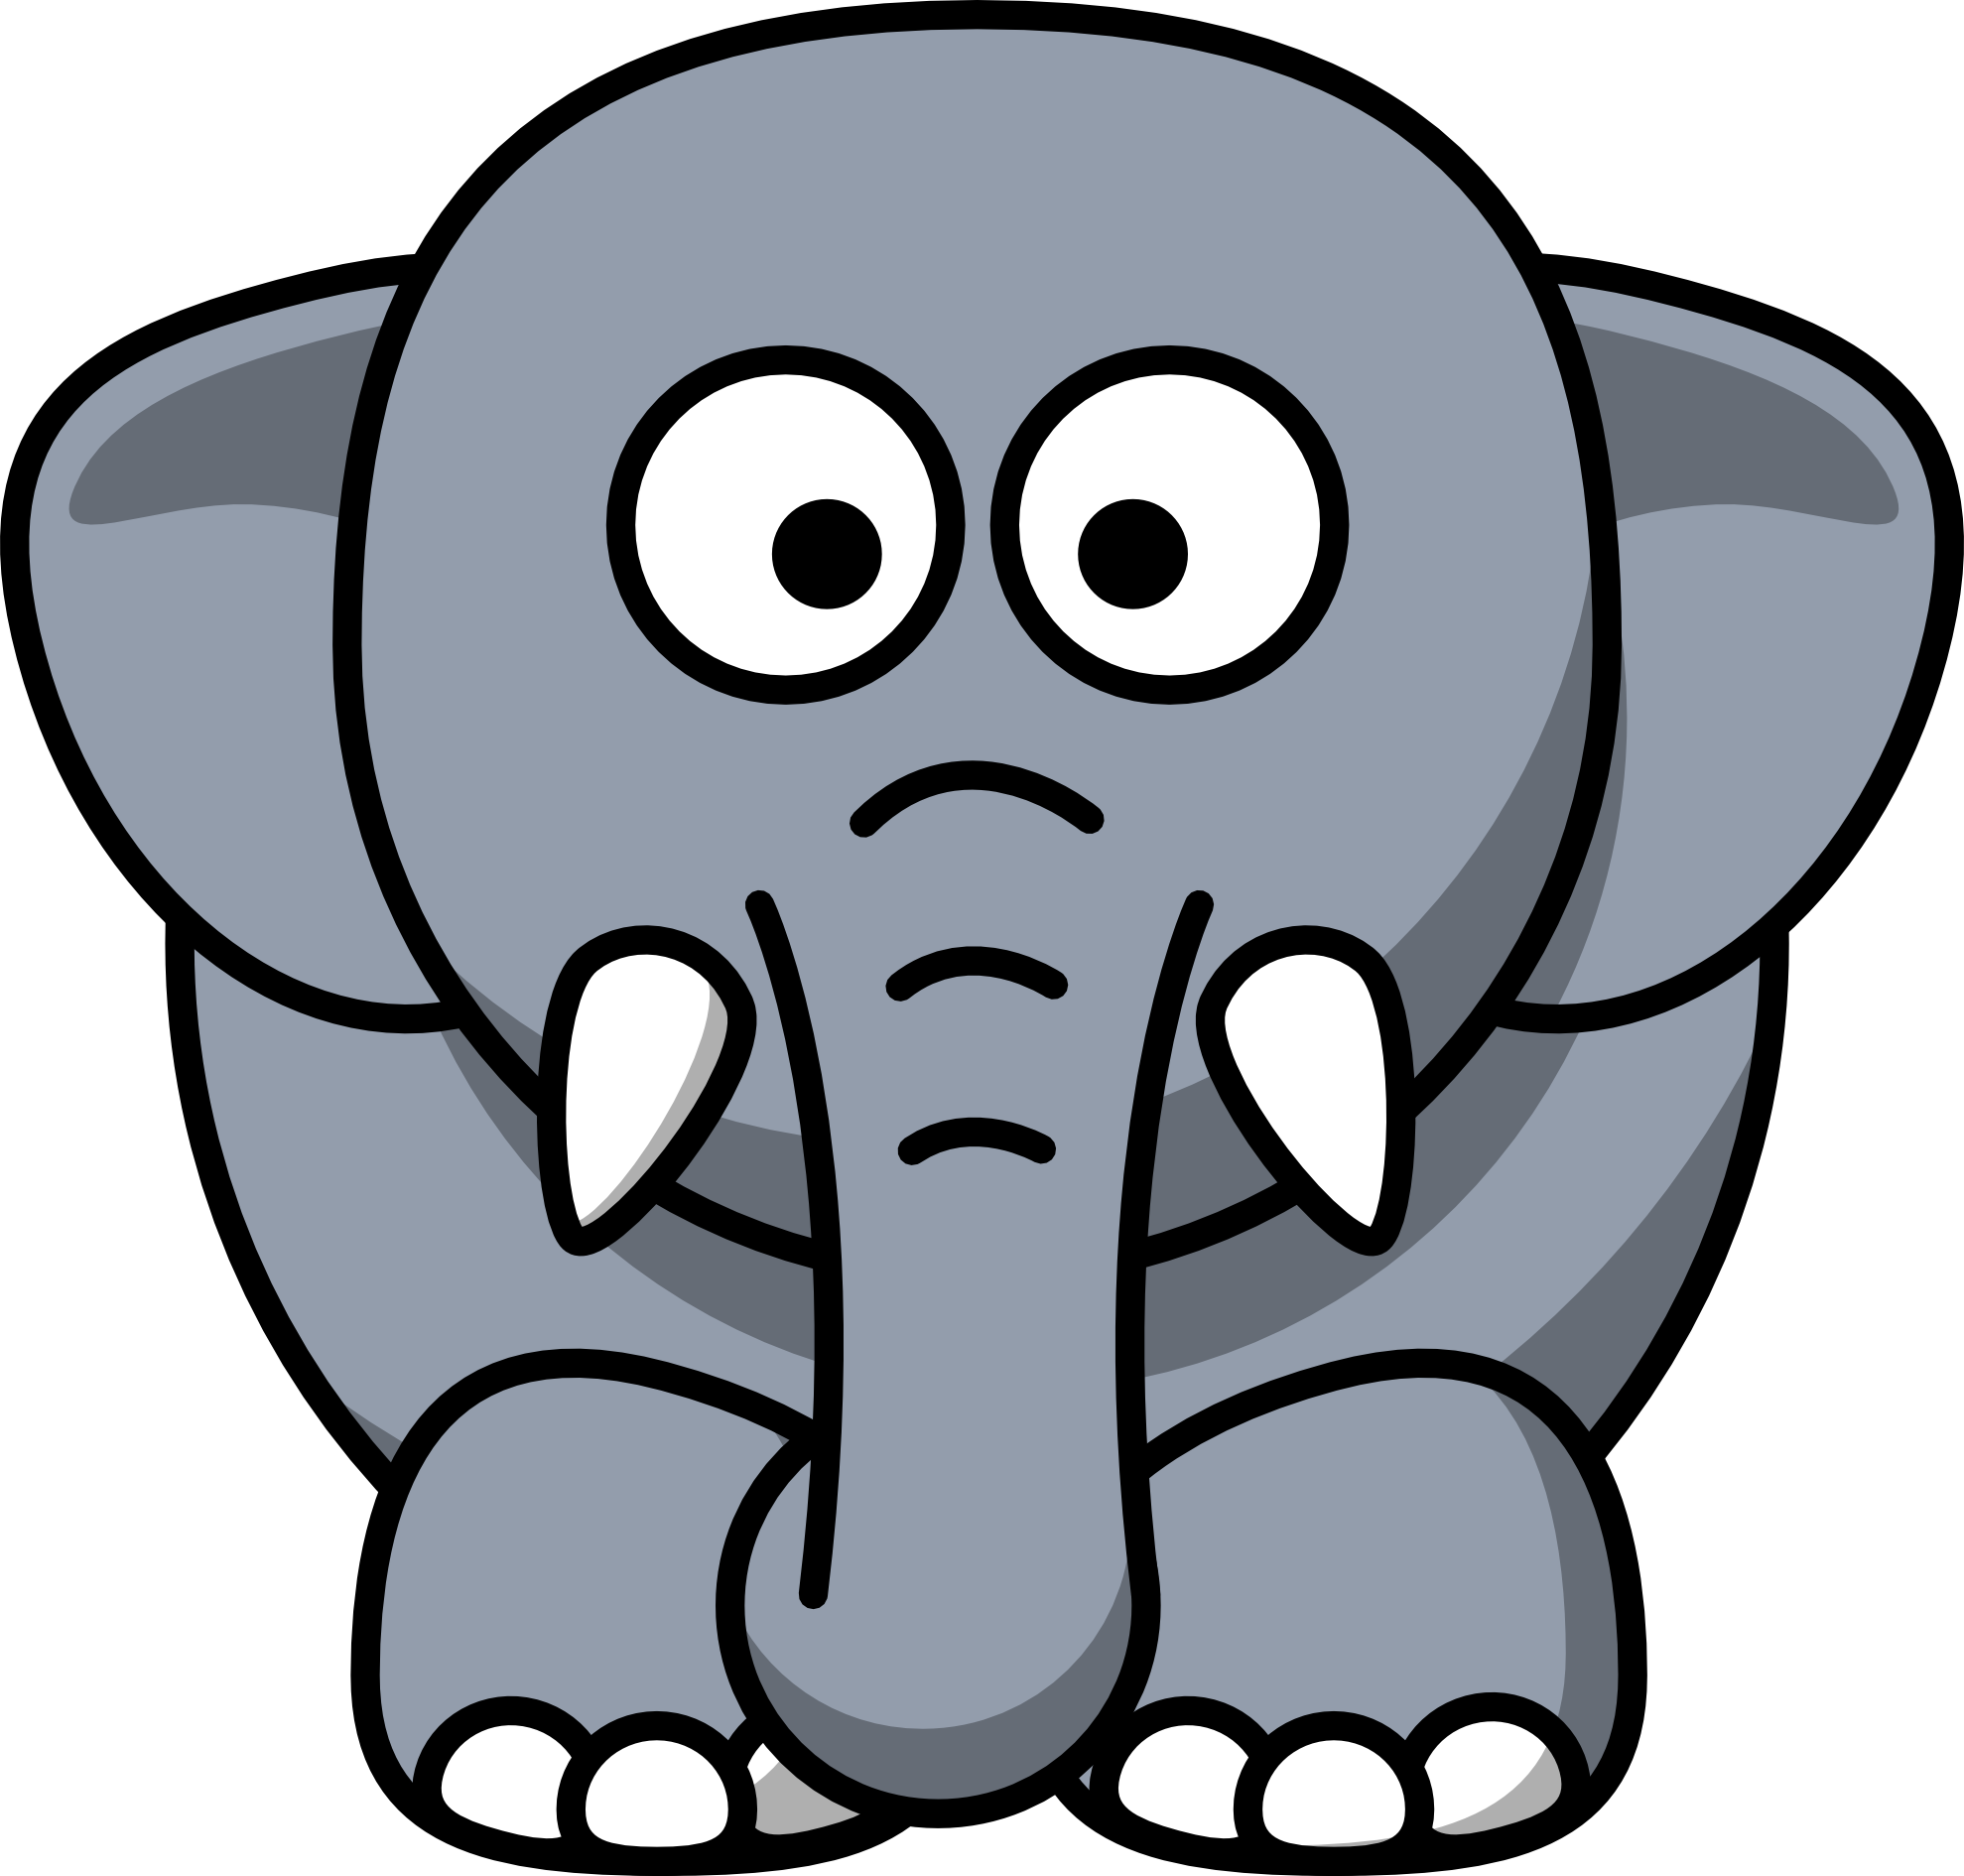 Elephant Clip Art Free Download | Clipart library - Free Clipart Images